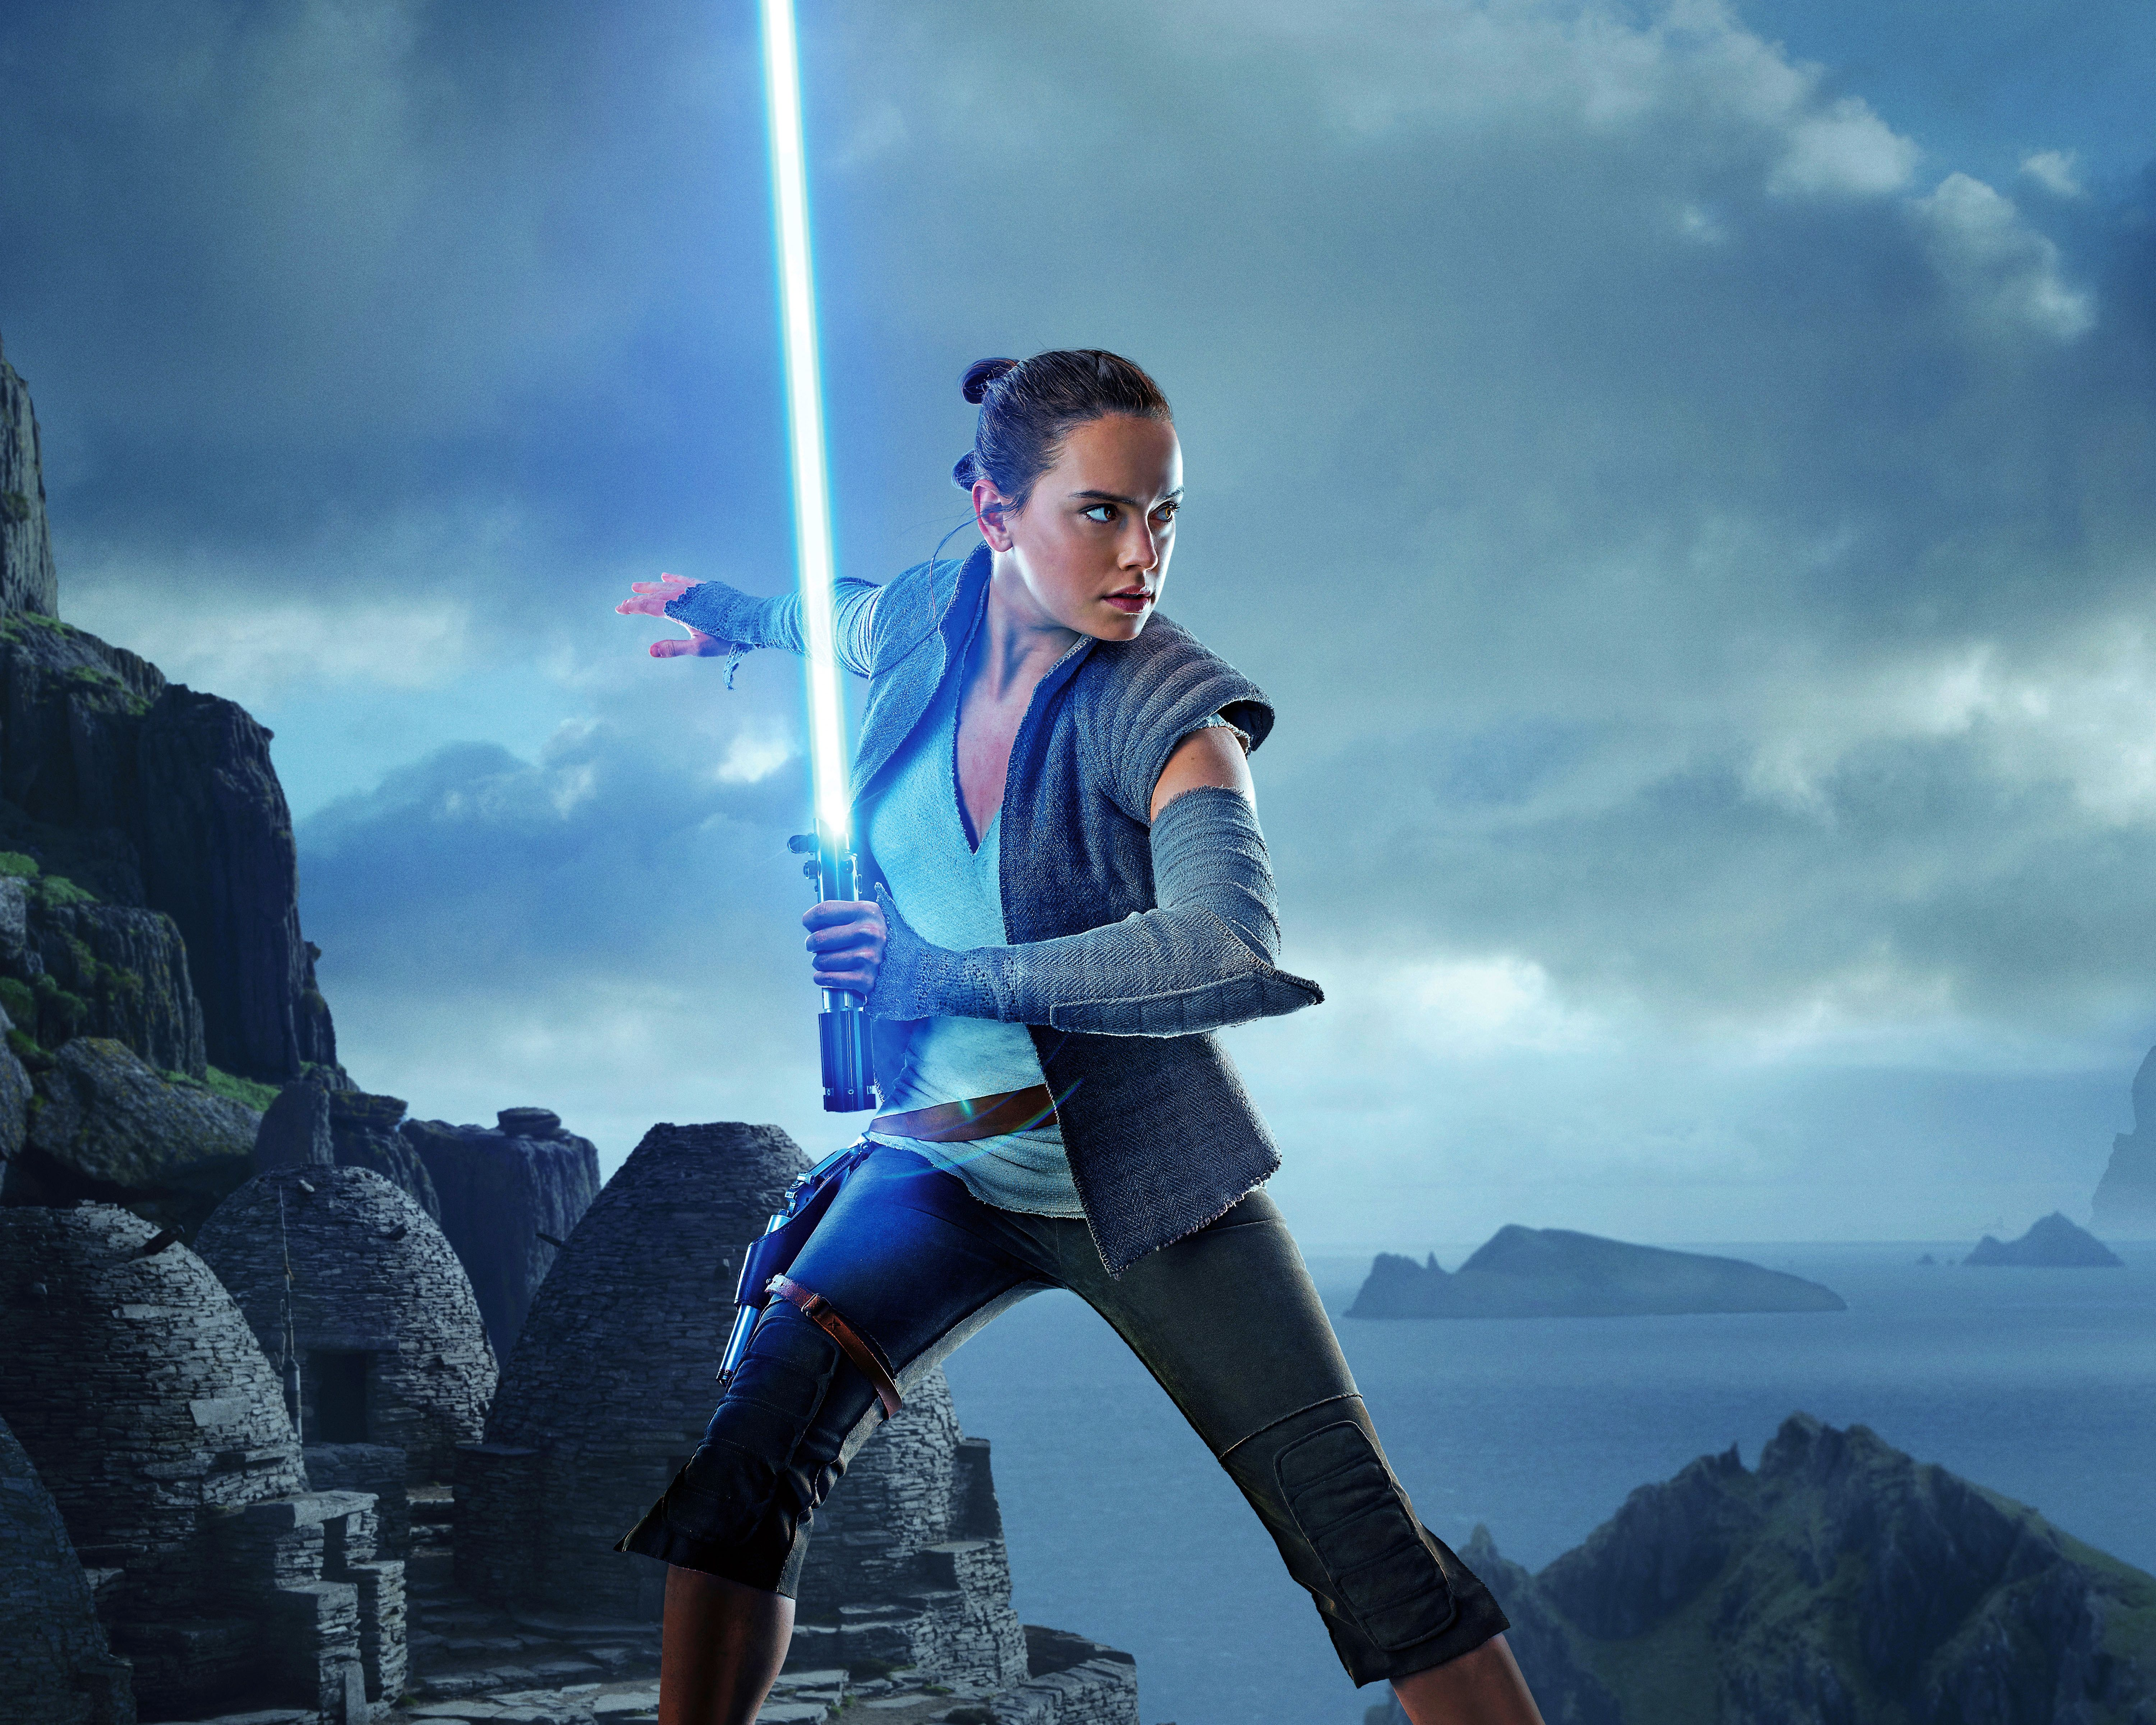 6000x4800 Picture Star Wars: The Last Jedi Daisy Ridley Swords Girls 6000x4800